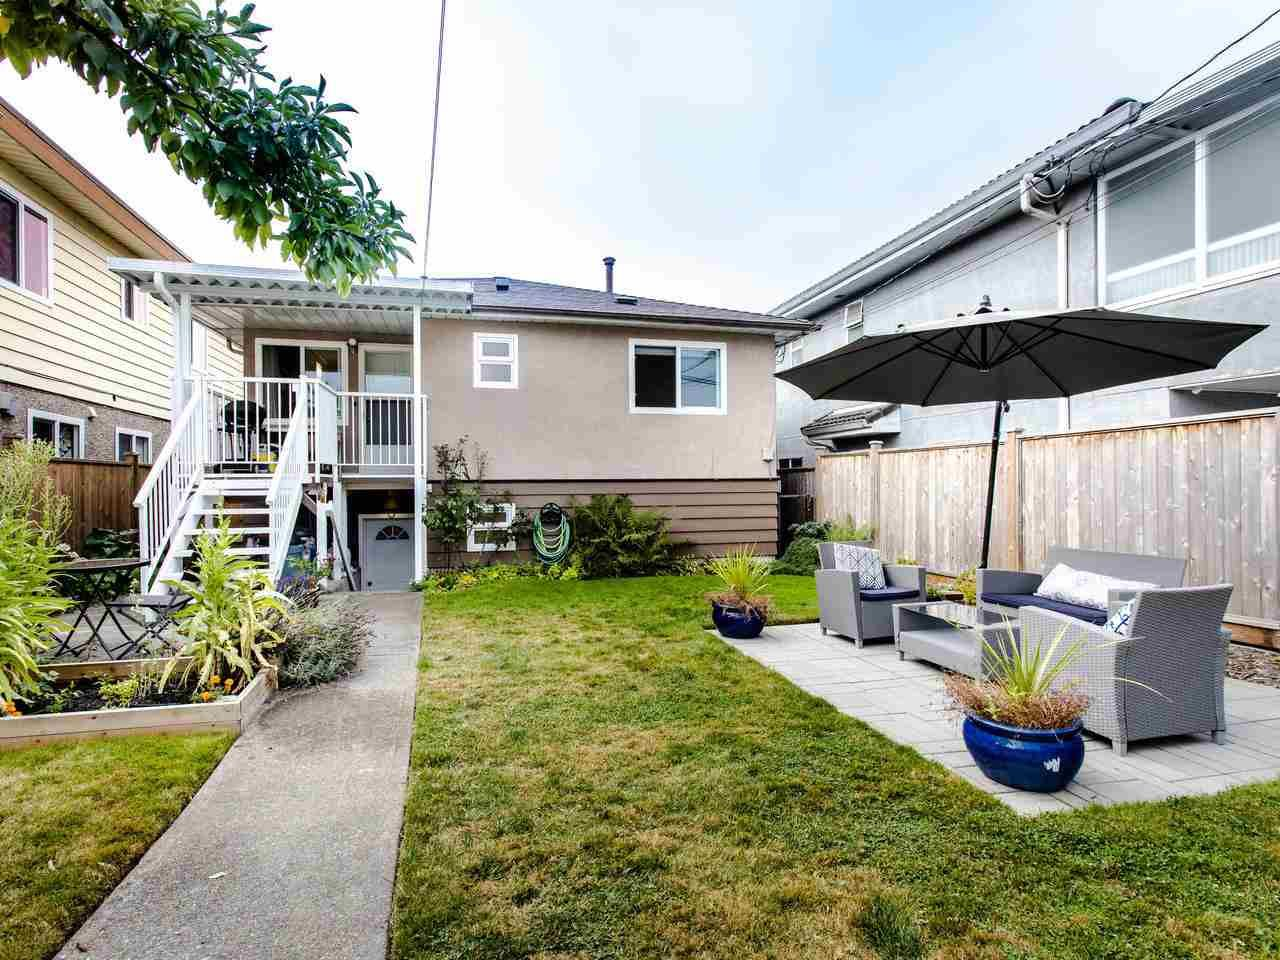 Photo 16: Photos: 4653 UNION STREET in Burnaby: Capitol Hill BN House for sale (Burnaby North)  : MLS®# R2493161